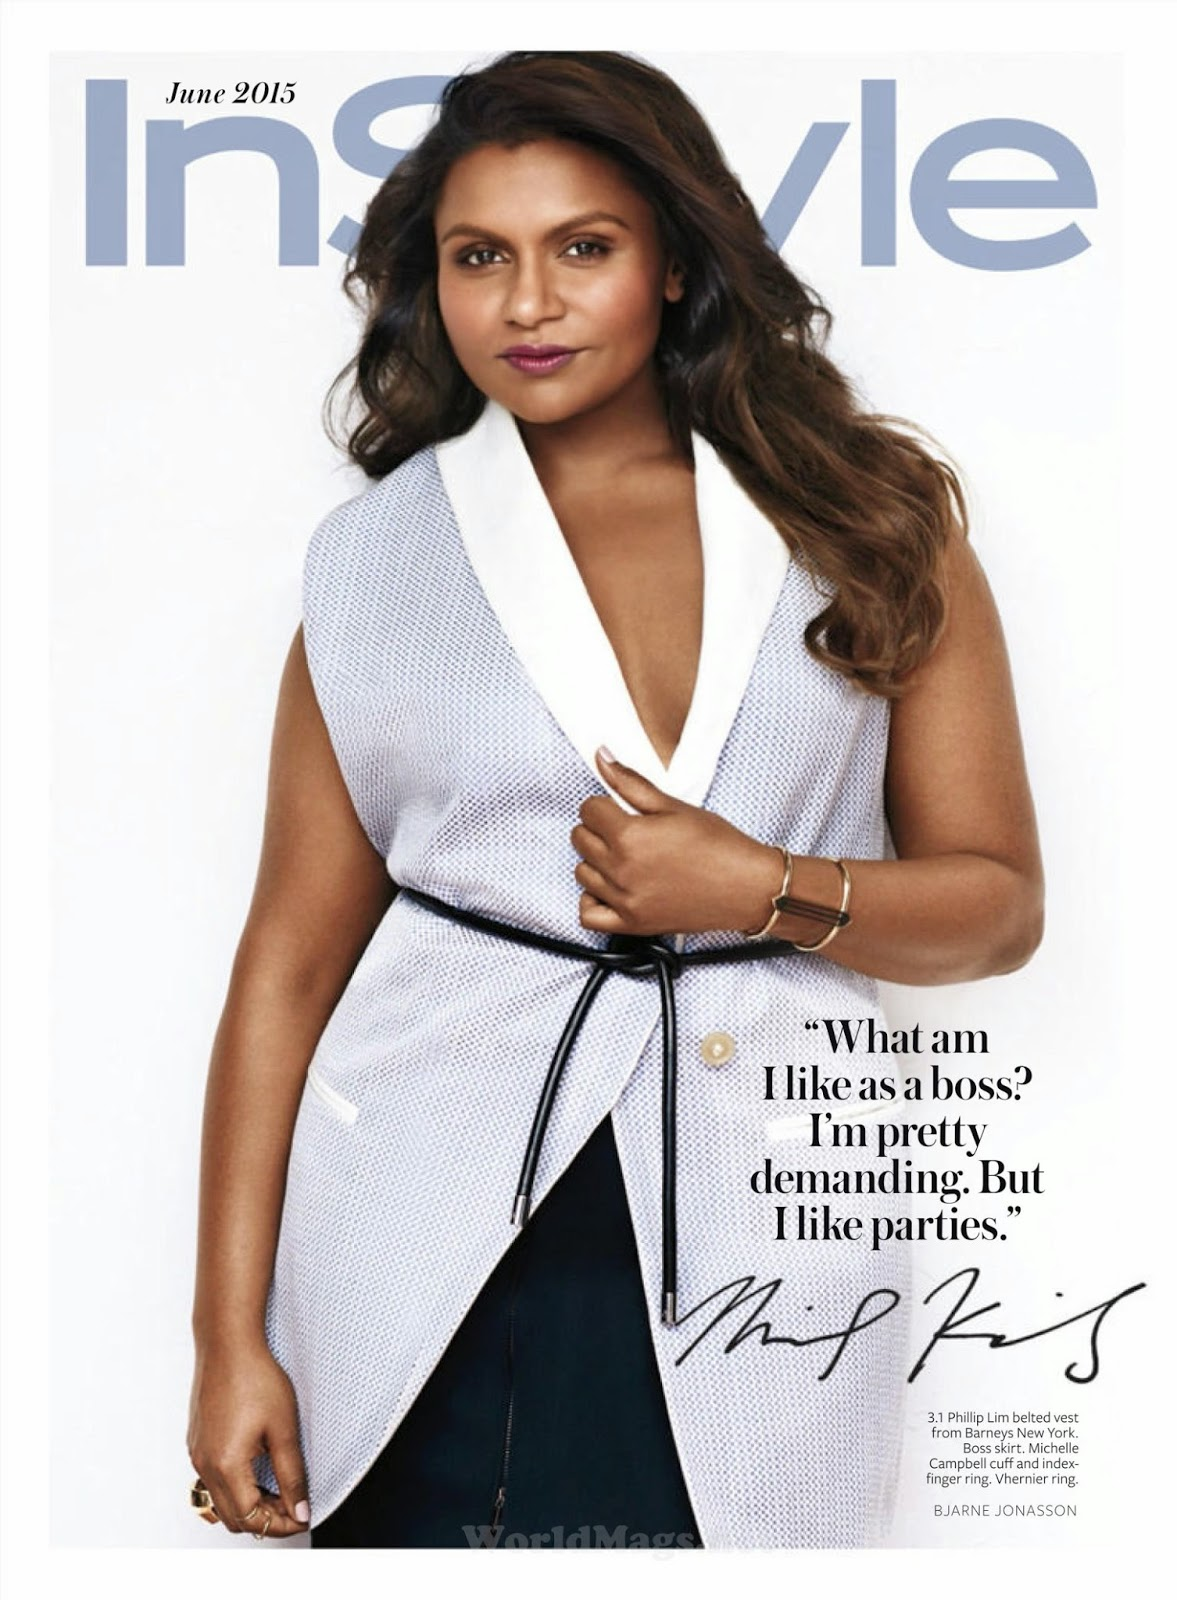 a17d7023120a1 Mindy Kaling Covers June 2015 InStyle - MyThirtySpot